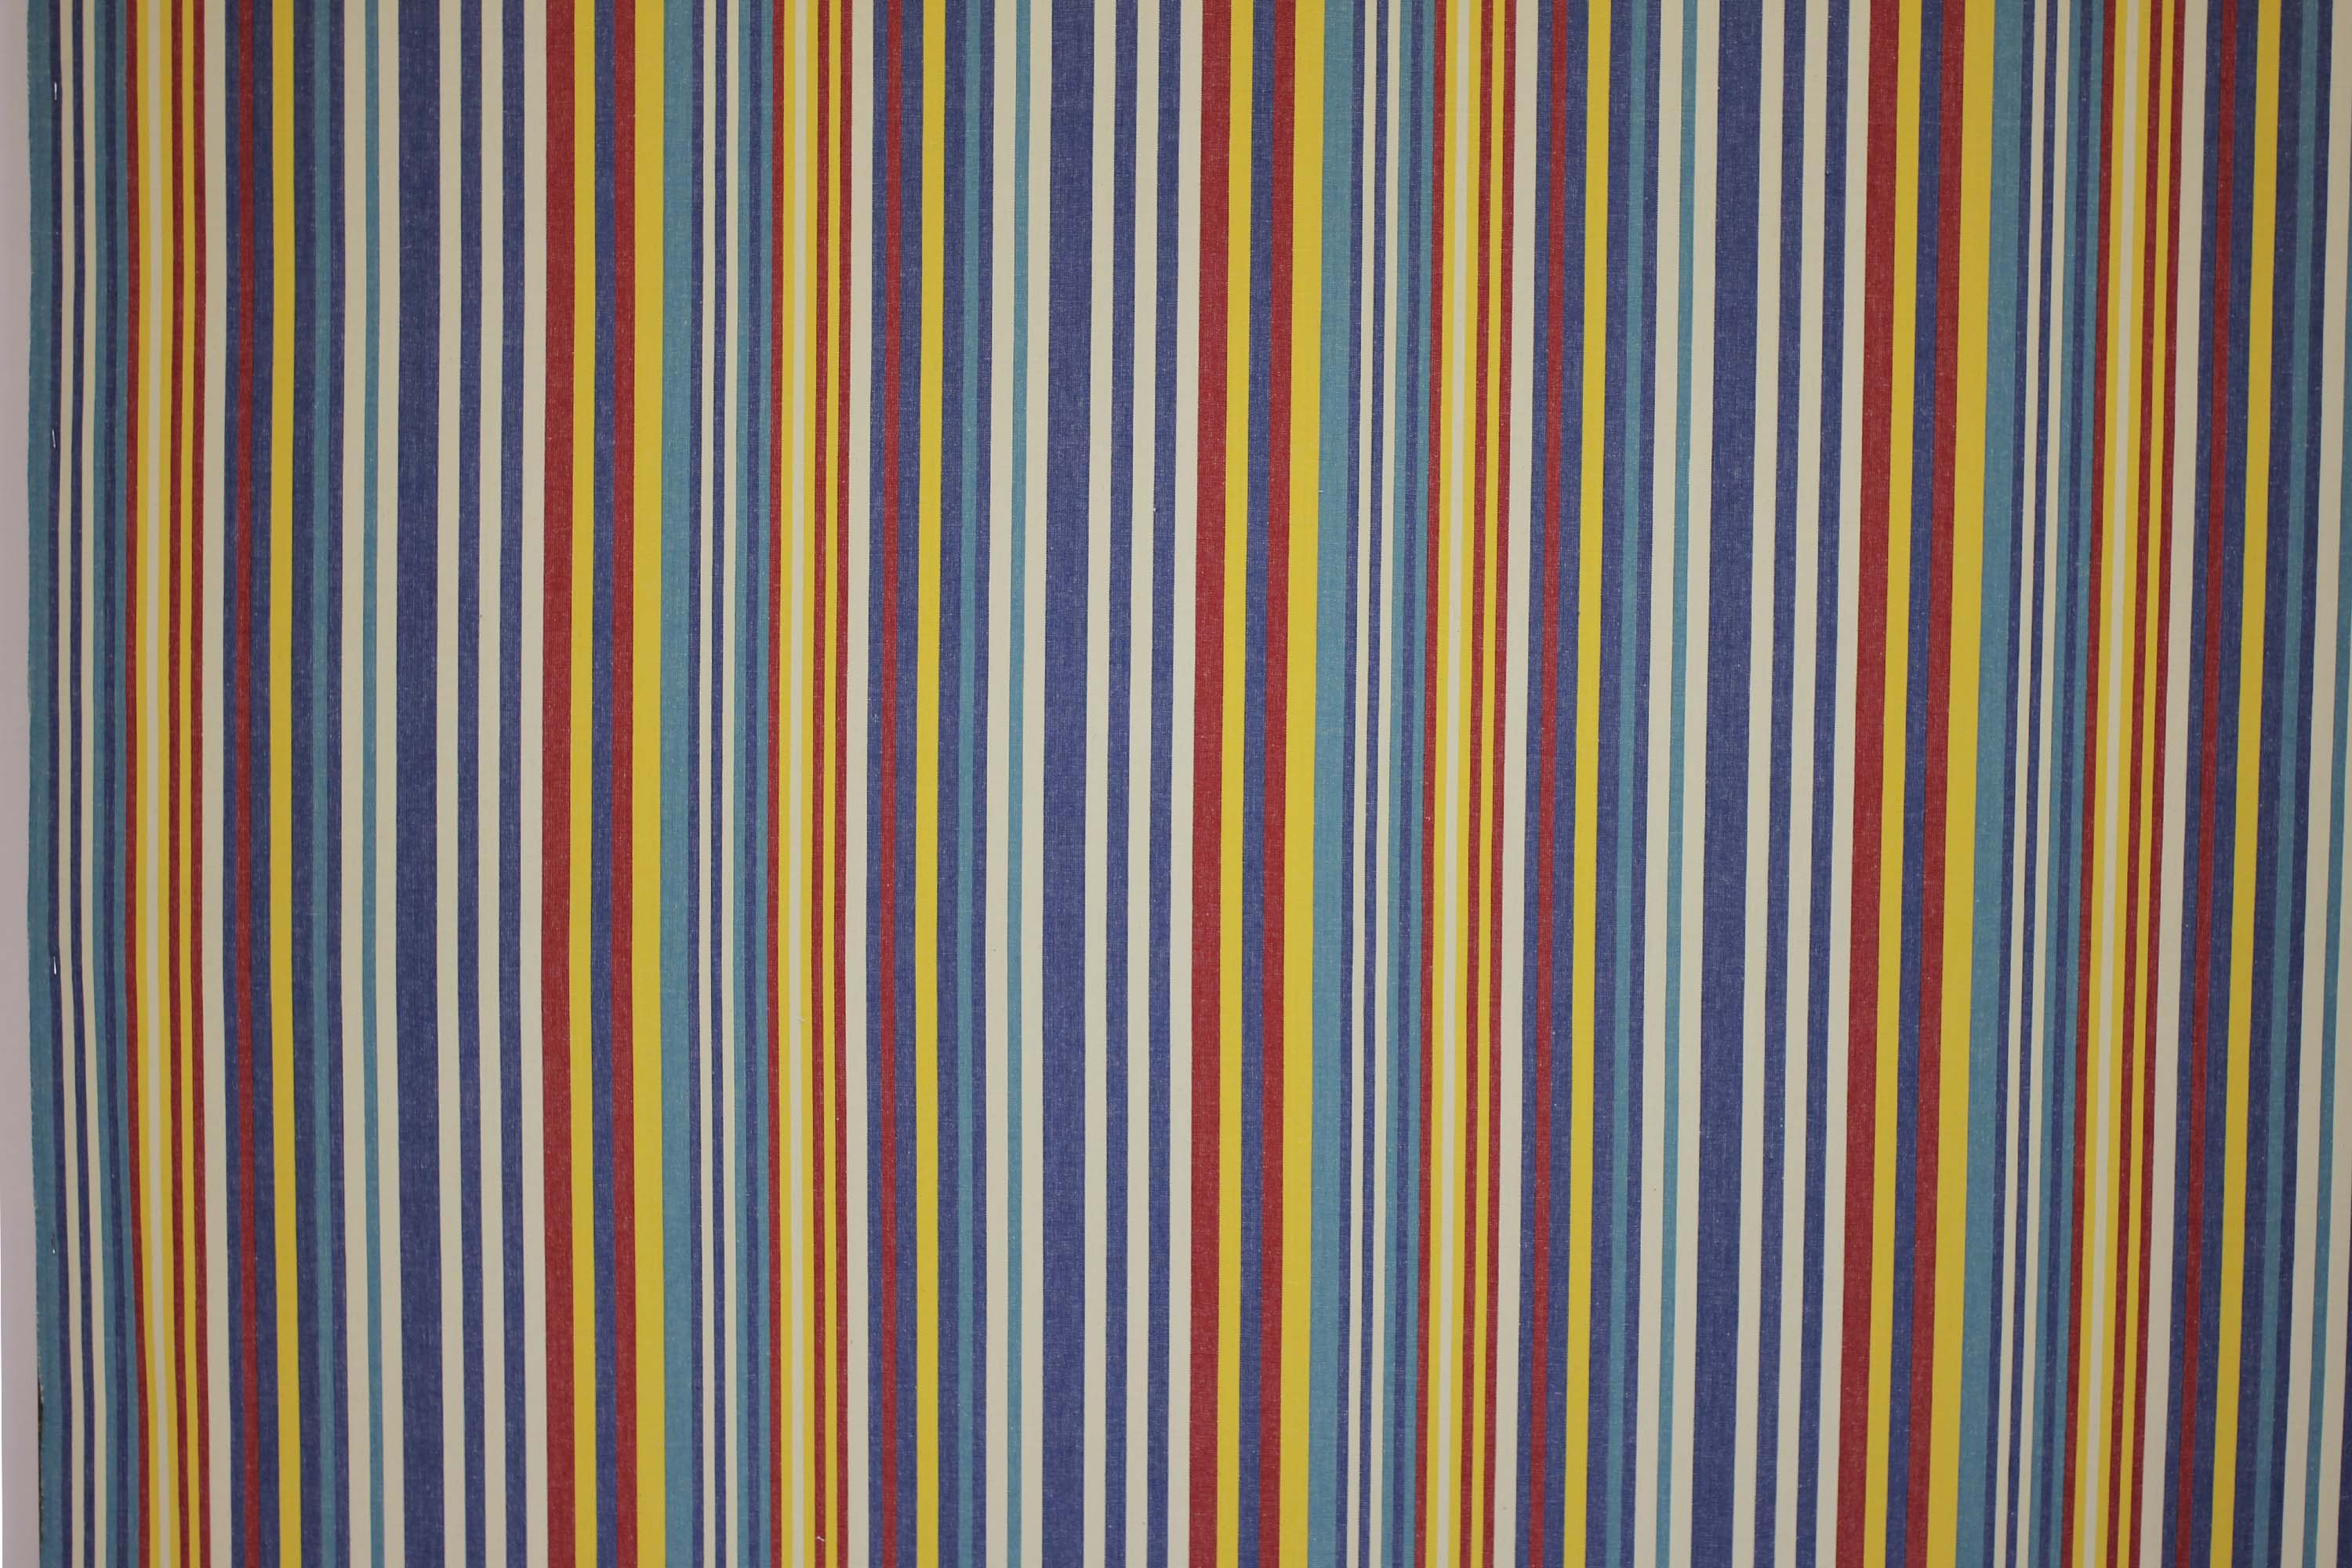 Denim Blue Striped Fabrics | Stripe Cotton Fabrics | Striped Curtain Fabrics | Upholstery Fabrics  Marathon Stripes